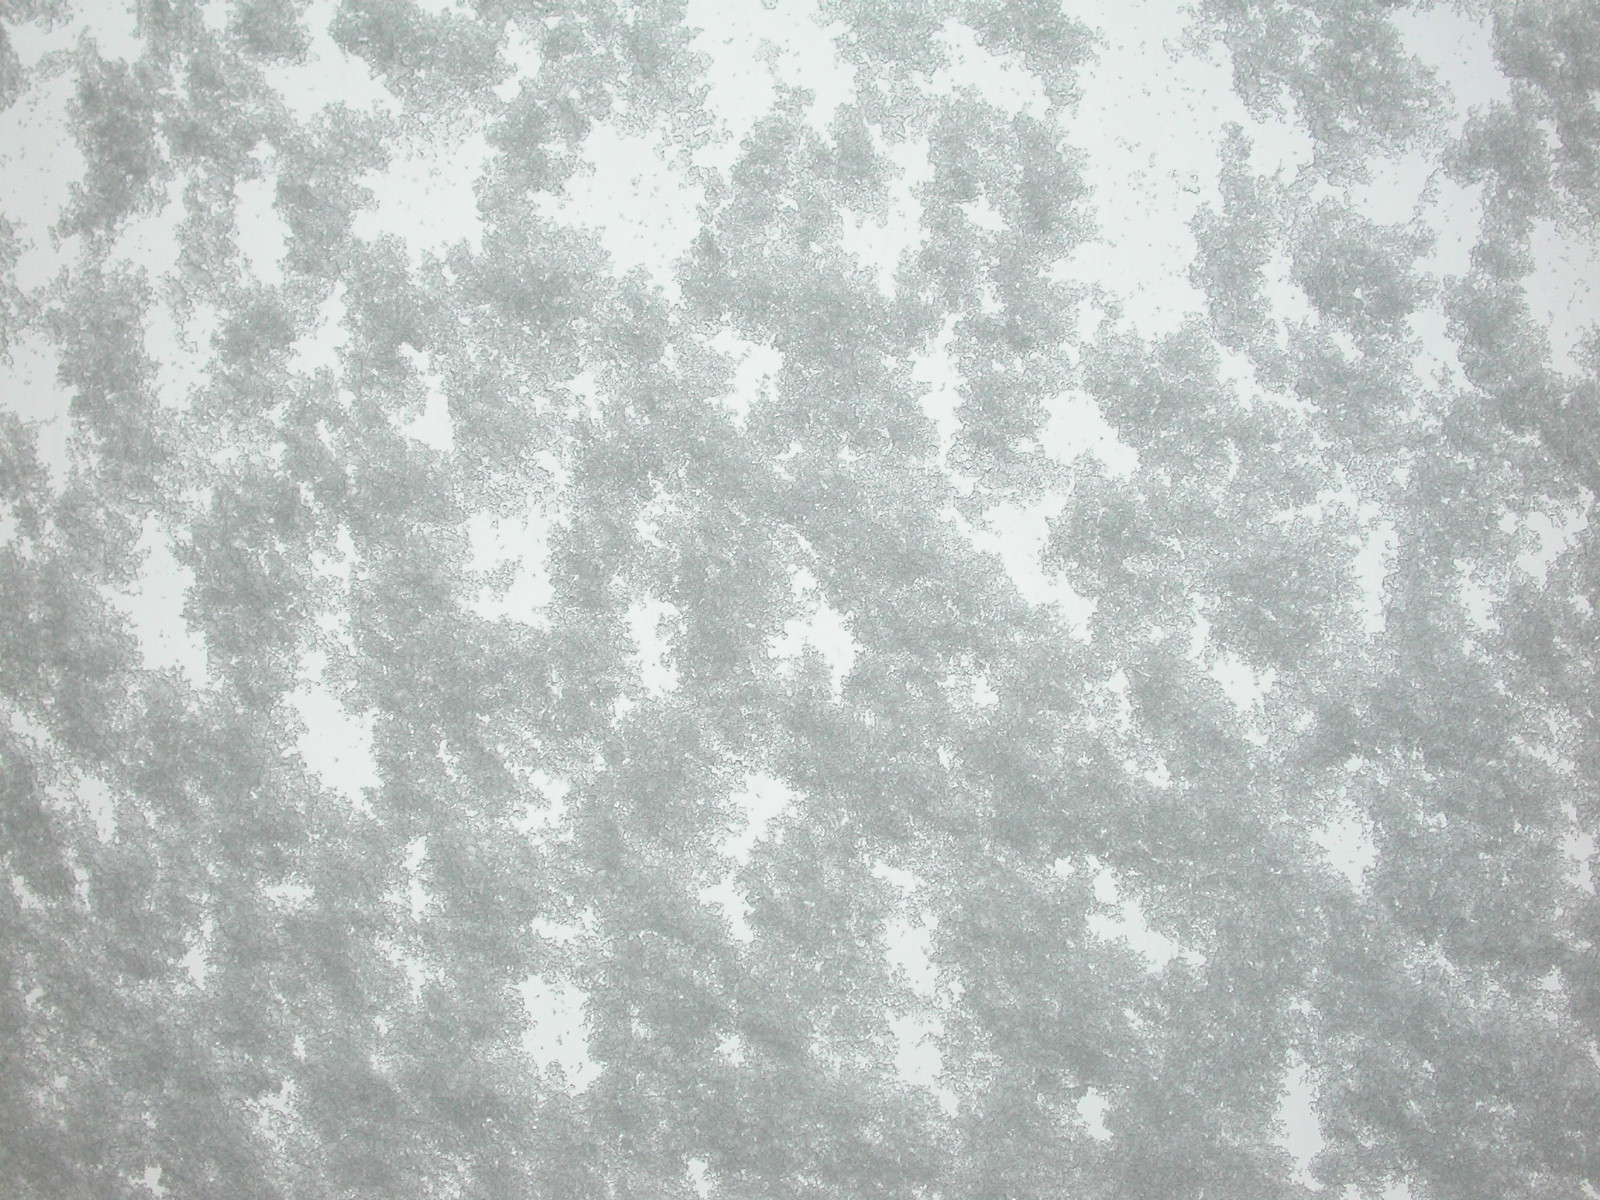 eva snow thick blanket white cold frost deep car window